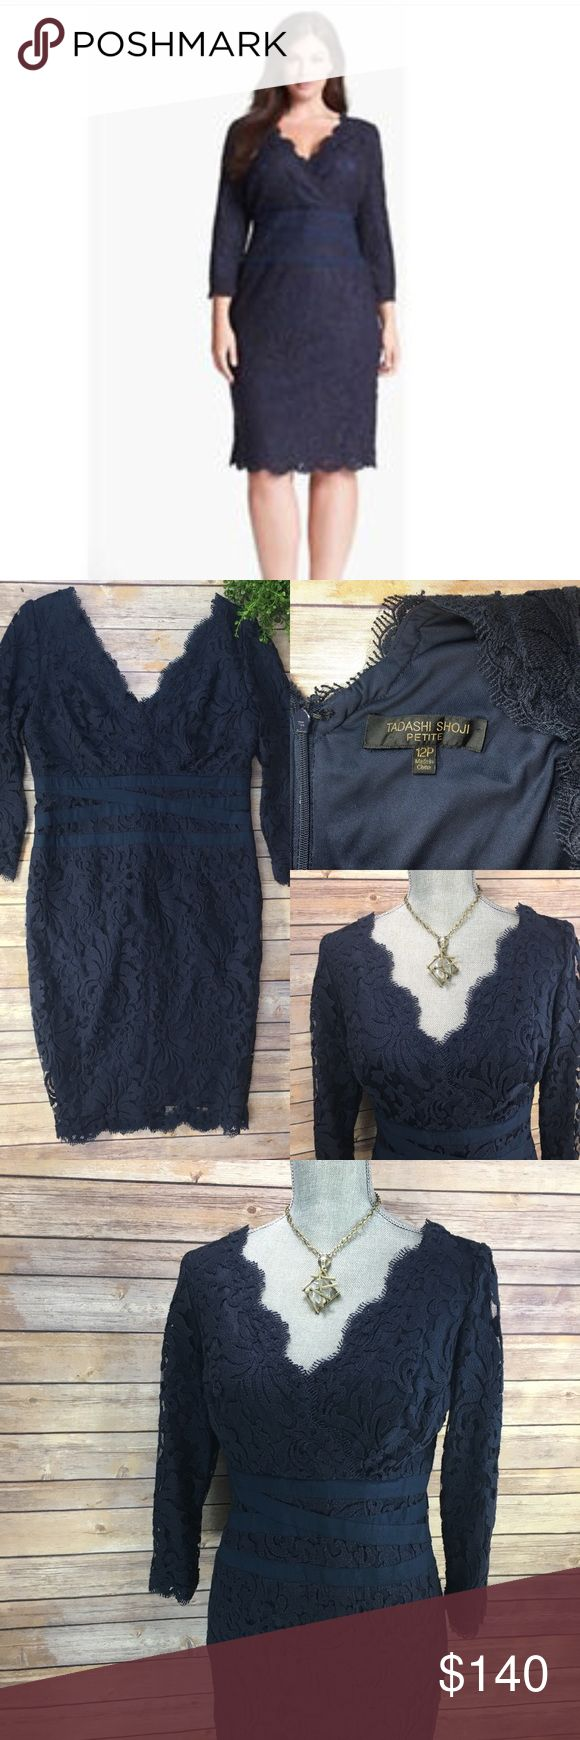 Tadashi Shoji Petite Sheath Lace Dress Stunning Tadashi Sheash Dress in Navy color.  Great, pre-loved Condition!  Size 12 Petite  3/4 length sleeve  Please see measurement photo to ensure fit prior to purchase. Tadashi Shoji Petite Dresses Midi